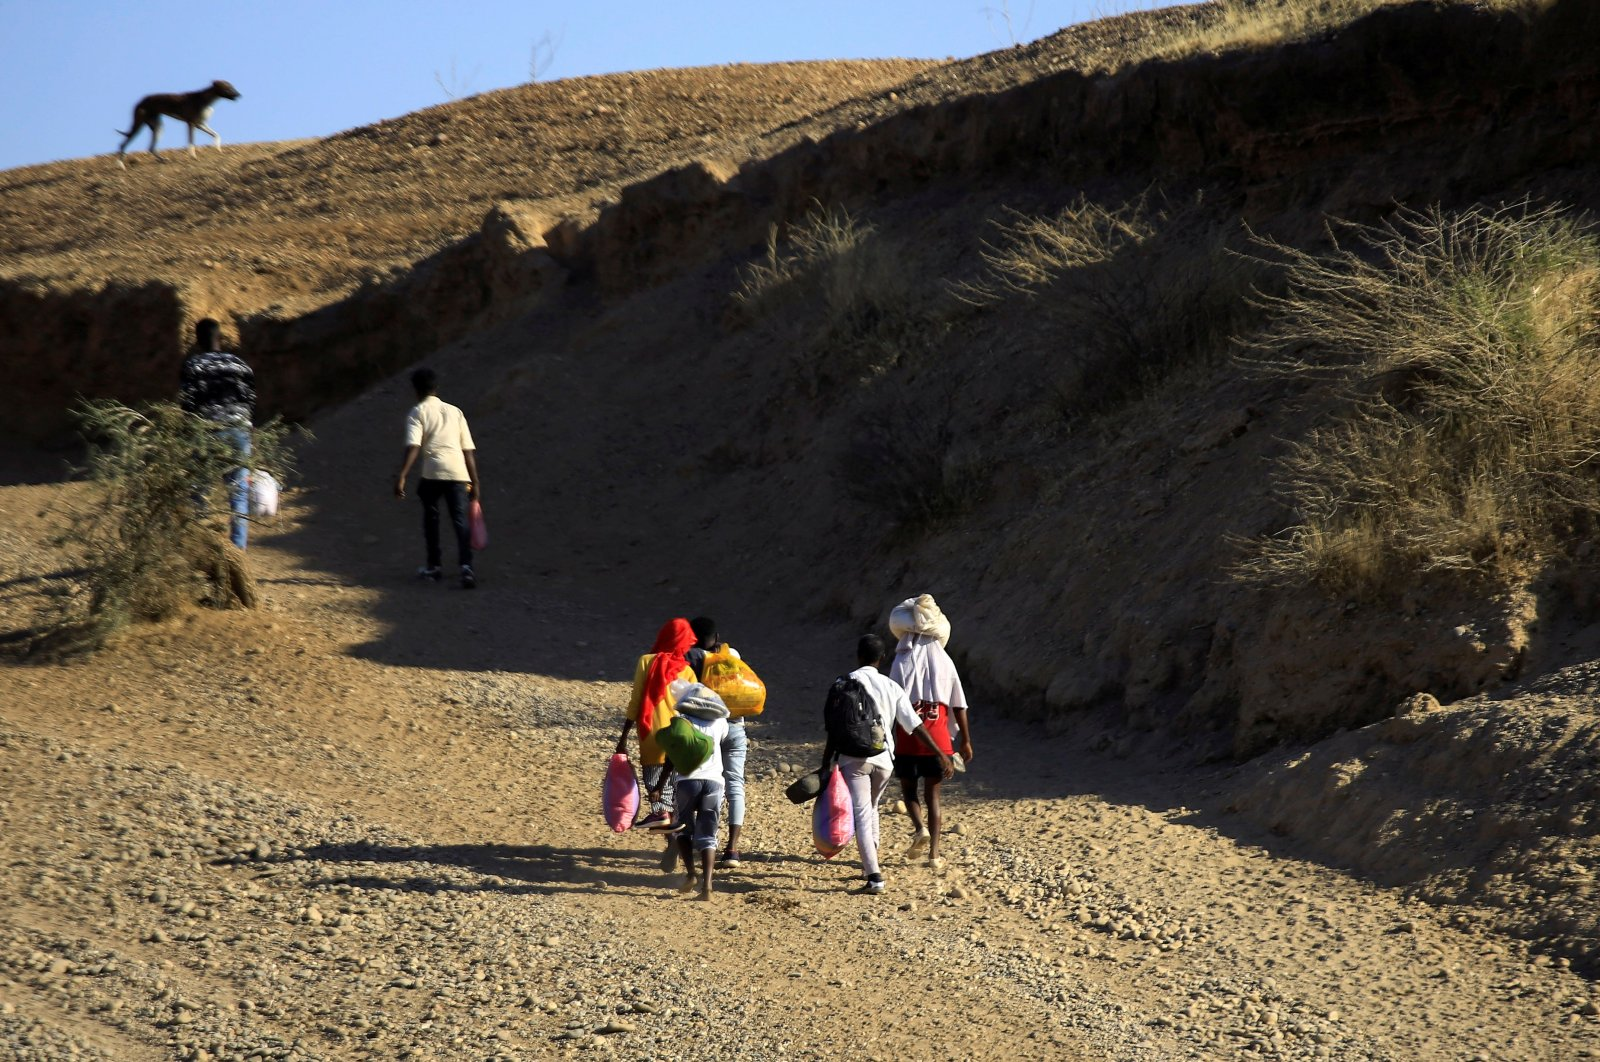 Ethiopians, who fled the ongoing fighting in Tigray region, carry their belongings after crossing the Setit River on the Sudan-Ethiopia border, in the eastern Kassala state, Sudan Dec. 16, 2020. (REUTERS)